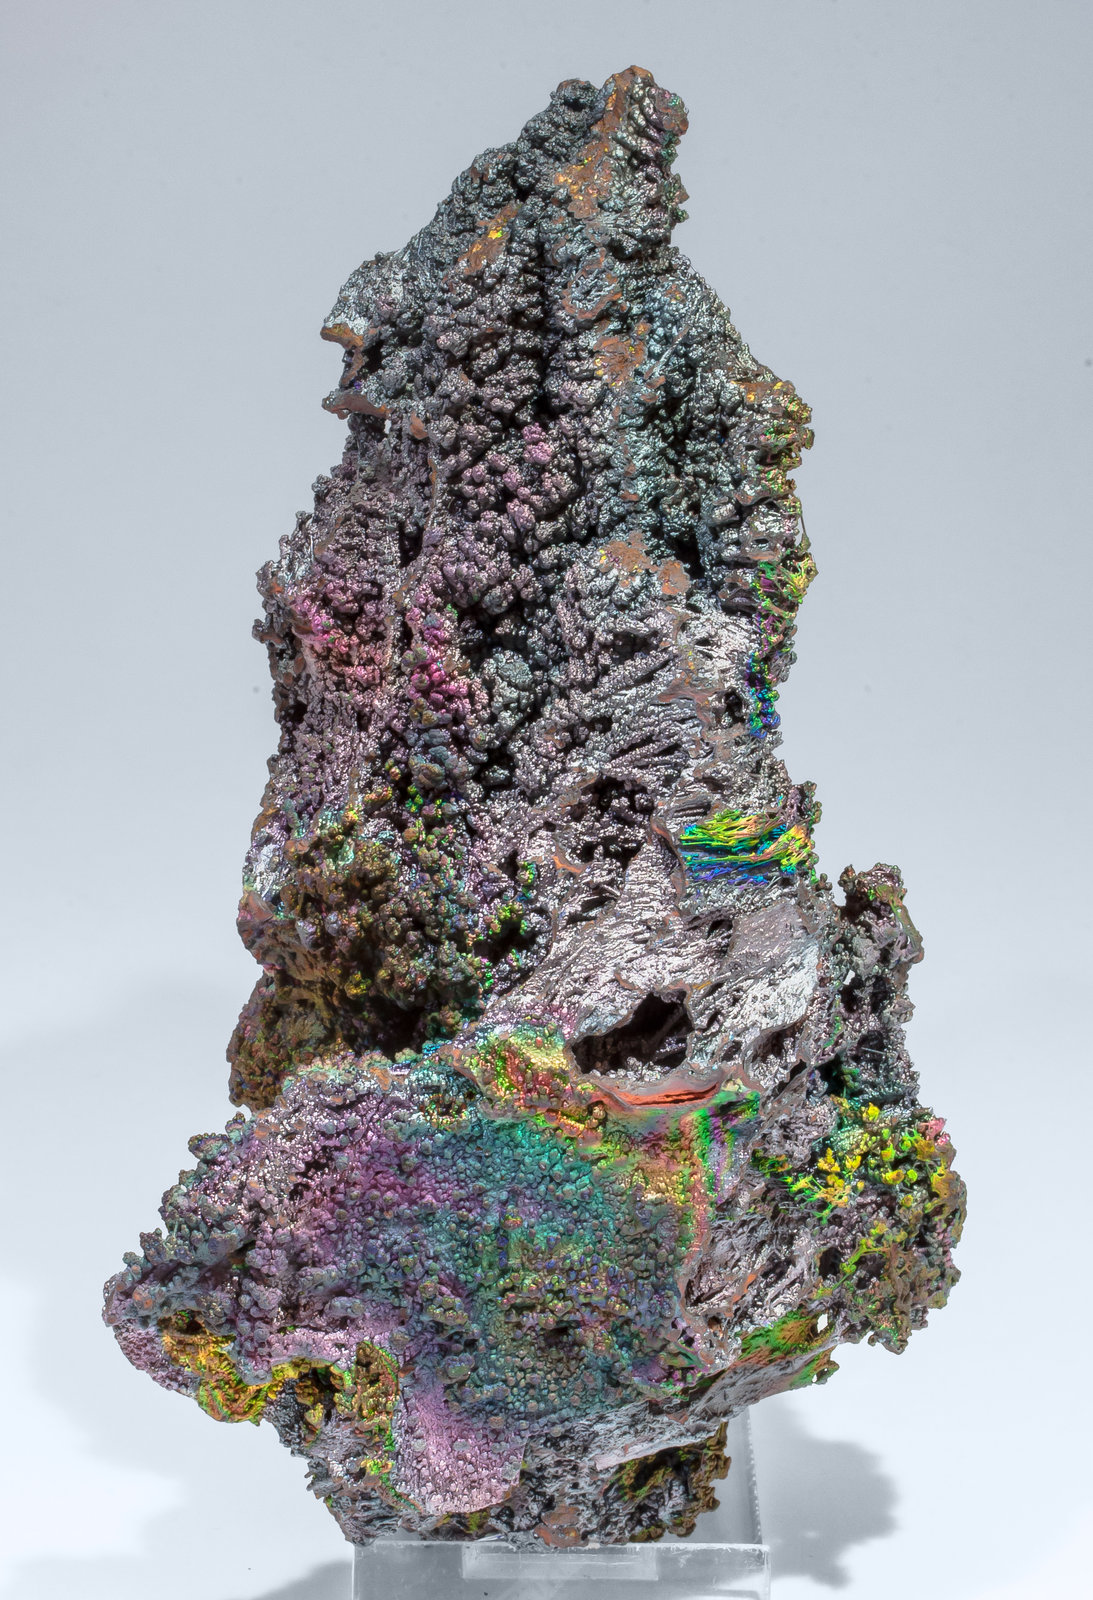 specimens/s_imagesAM1/Goethite-NB46AM1f.jpg